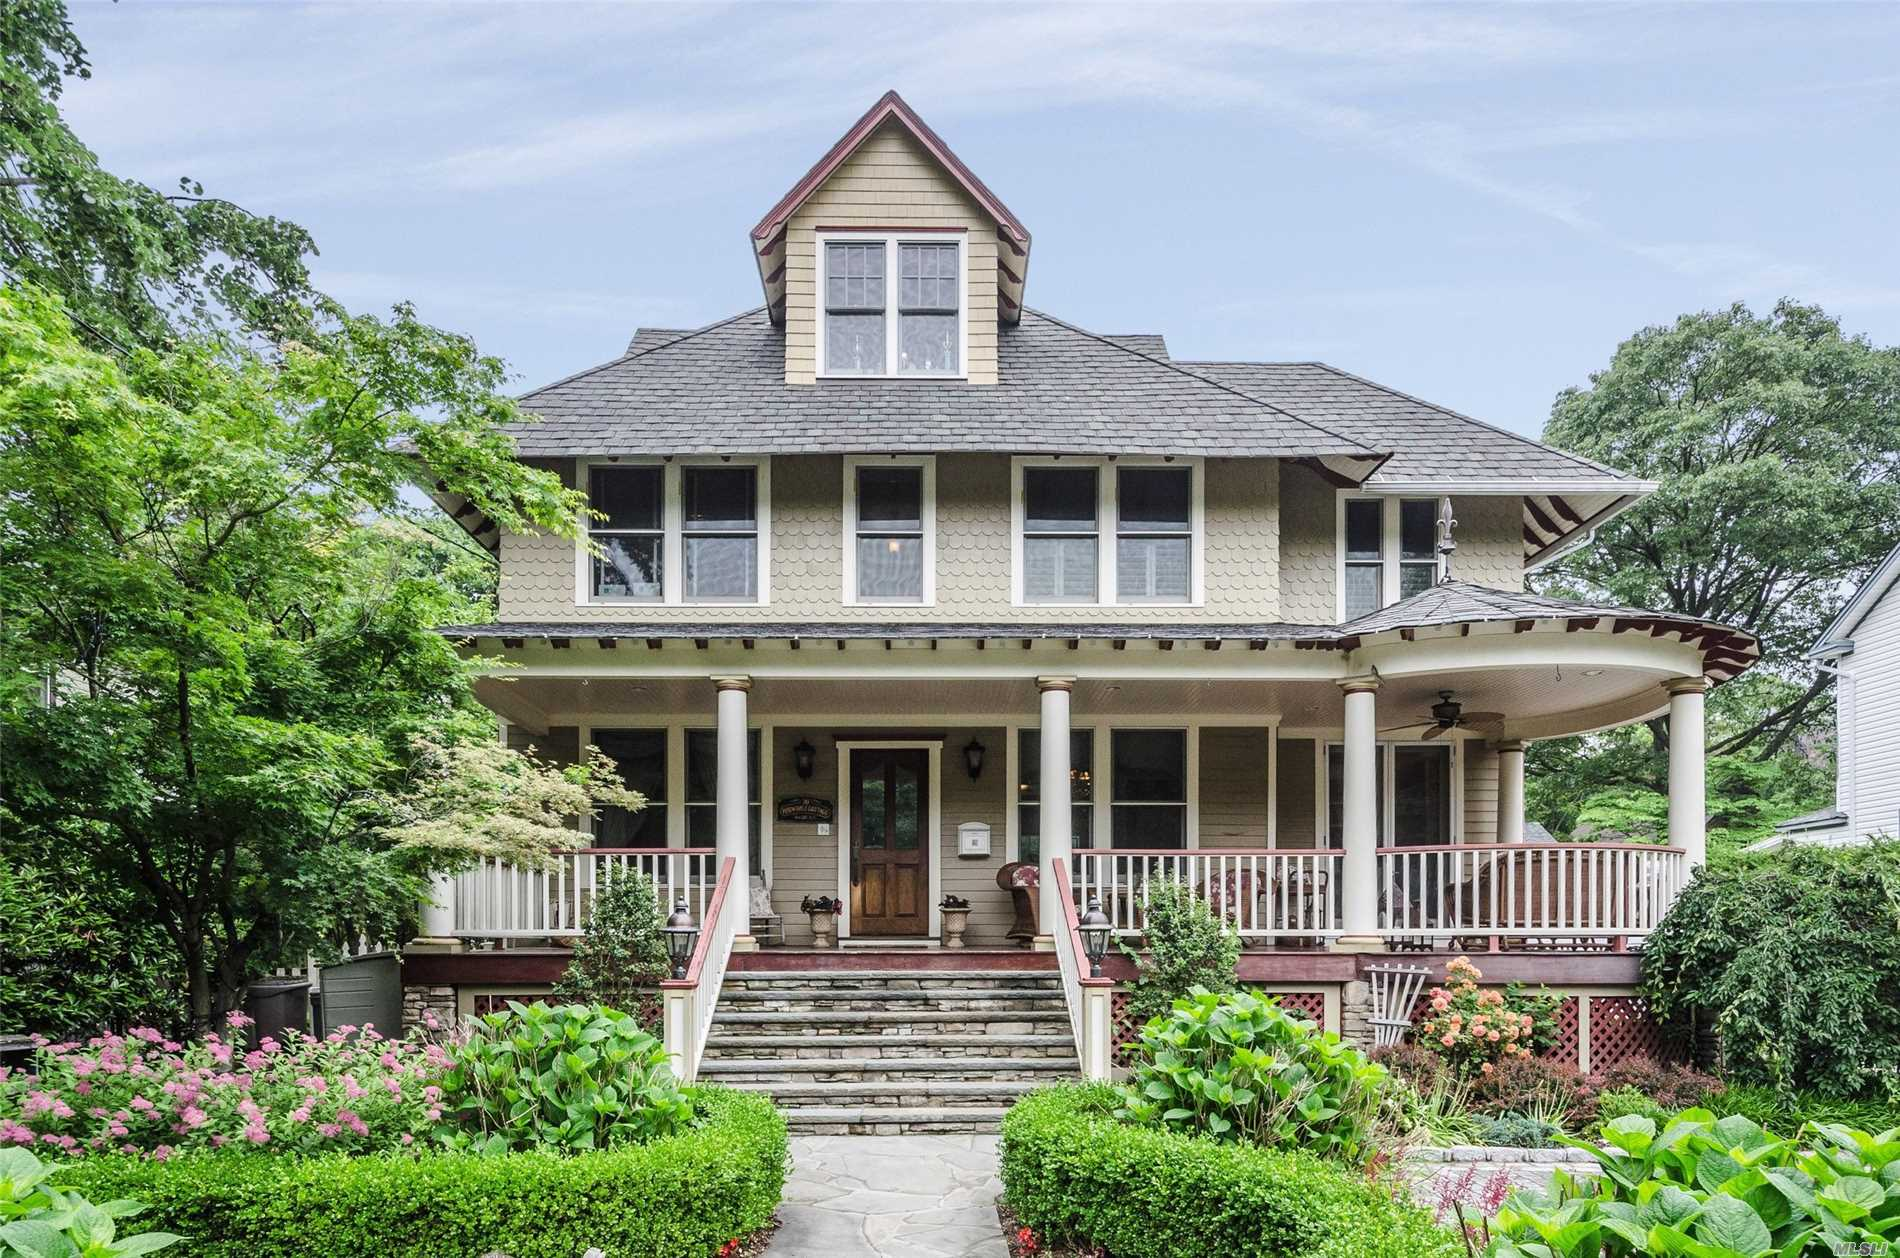 Finally a Sea Cliff Victorian that has been updated with lovely sized rooms, plenty of storage, beautiful details such as decorative moldings, cove plaster ceilings, stain glass windows, master bath w/claw foot tub, cooks kitchen with refrigerator drawers and outdoors you will find a PIZZA oven, a PIRATE SHIP and a CHARGING STATION for 2 electric cars! Hang out on Periwinkle Cottage's wrap around porch and enjoy Sea Cliff living!! Located a few blocks from the Village center, parks & school!